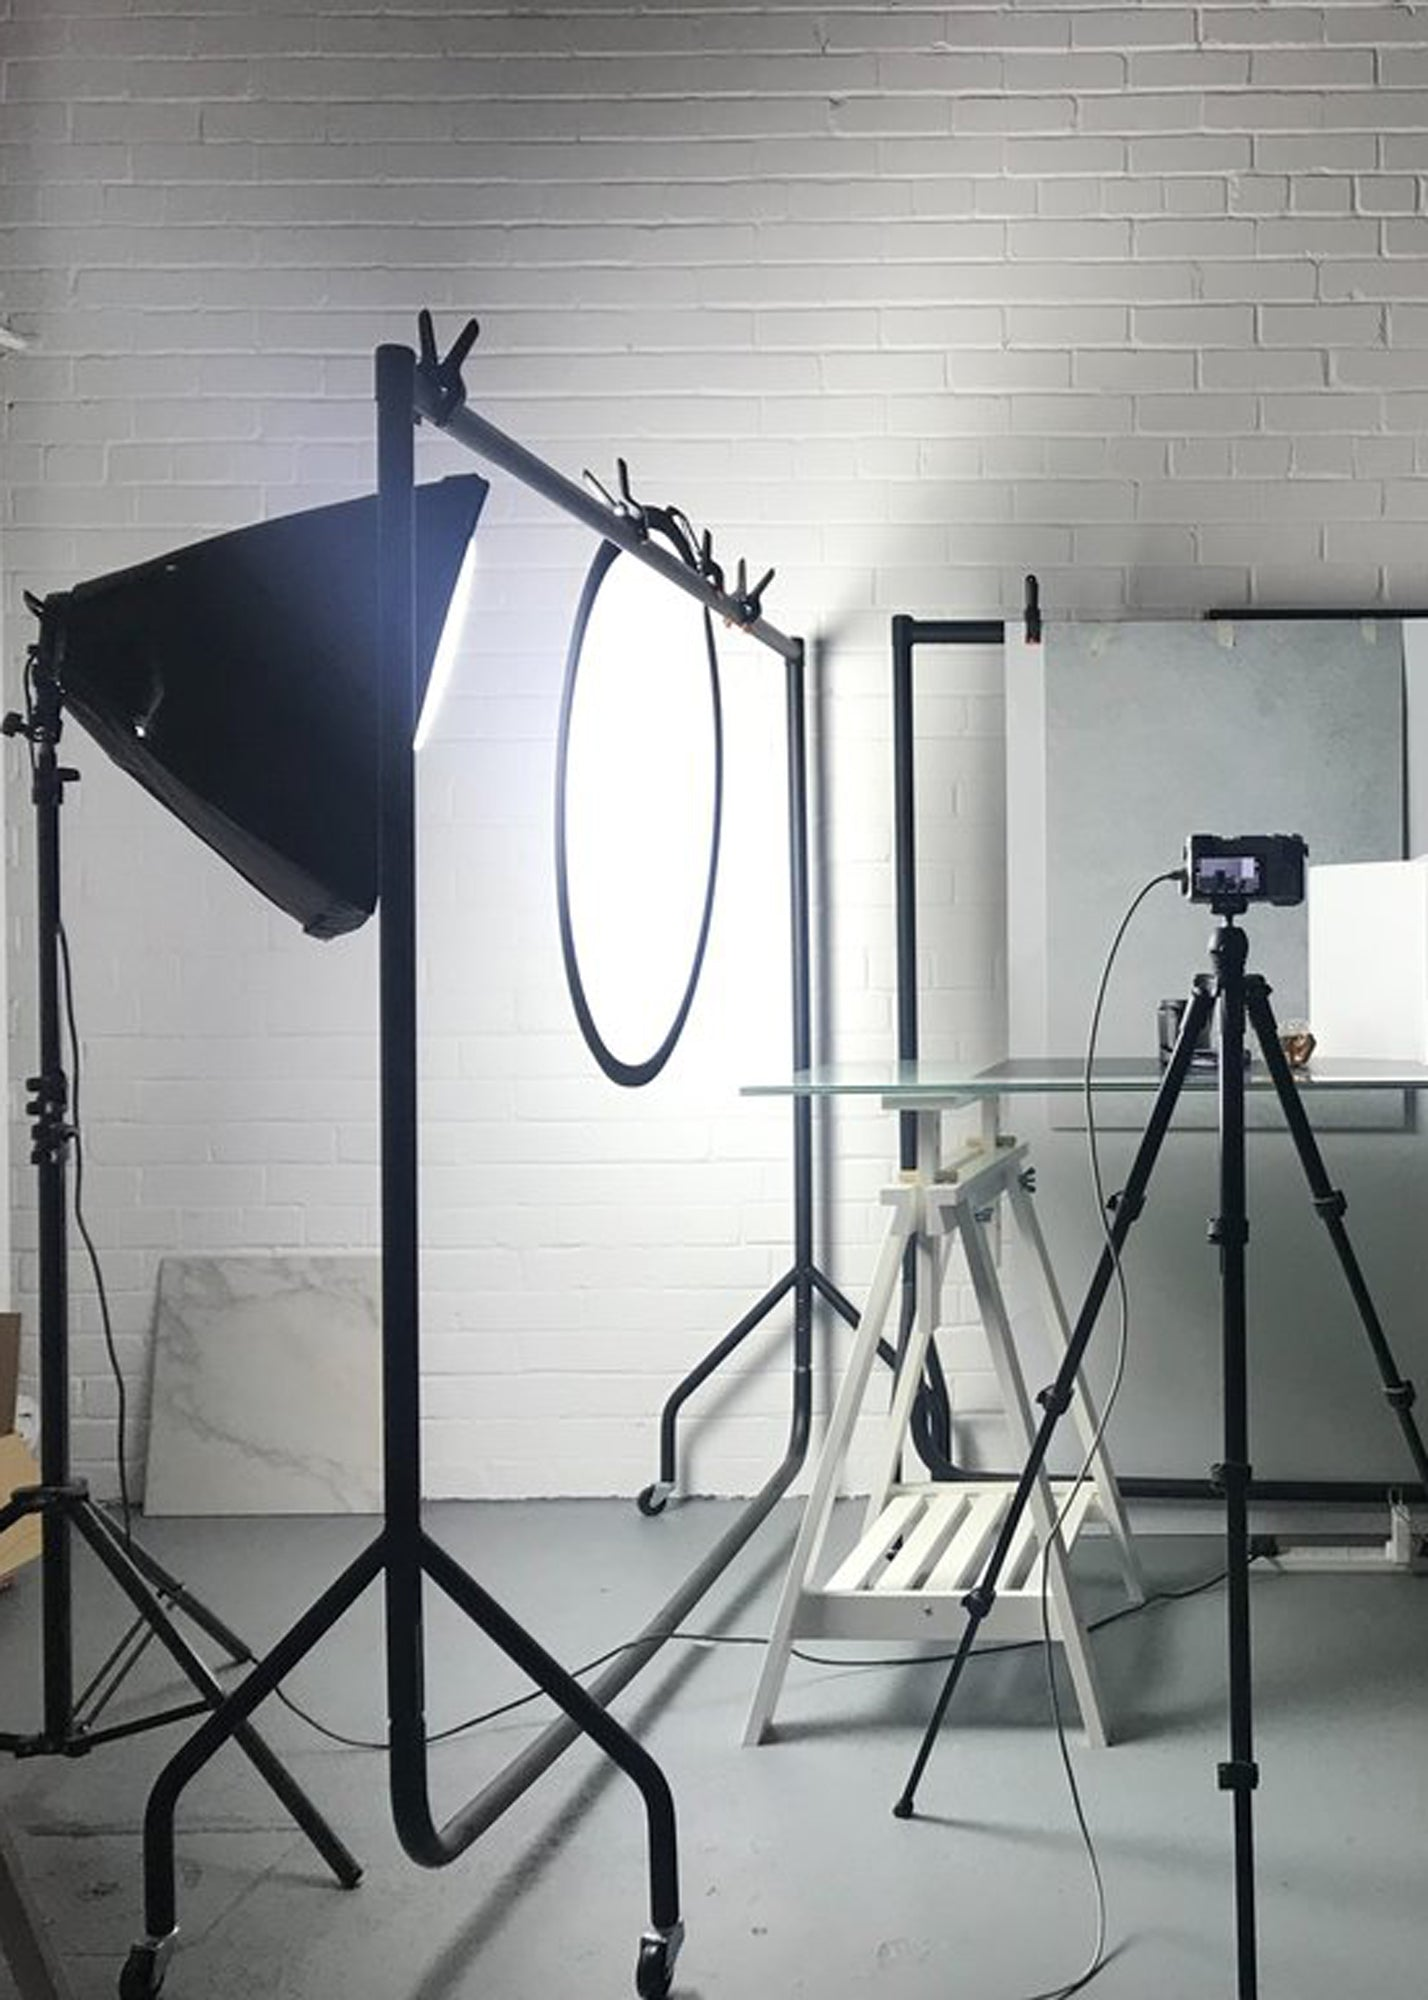 Constant Lighting Setup for Food and Product Photography